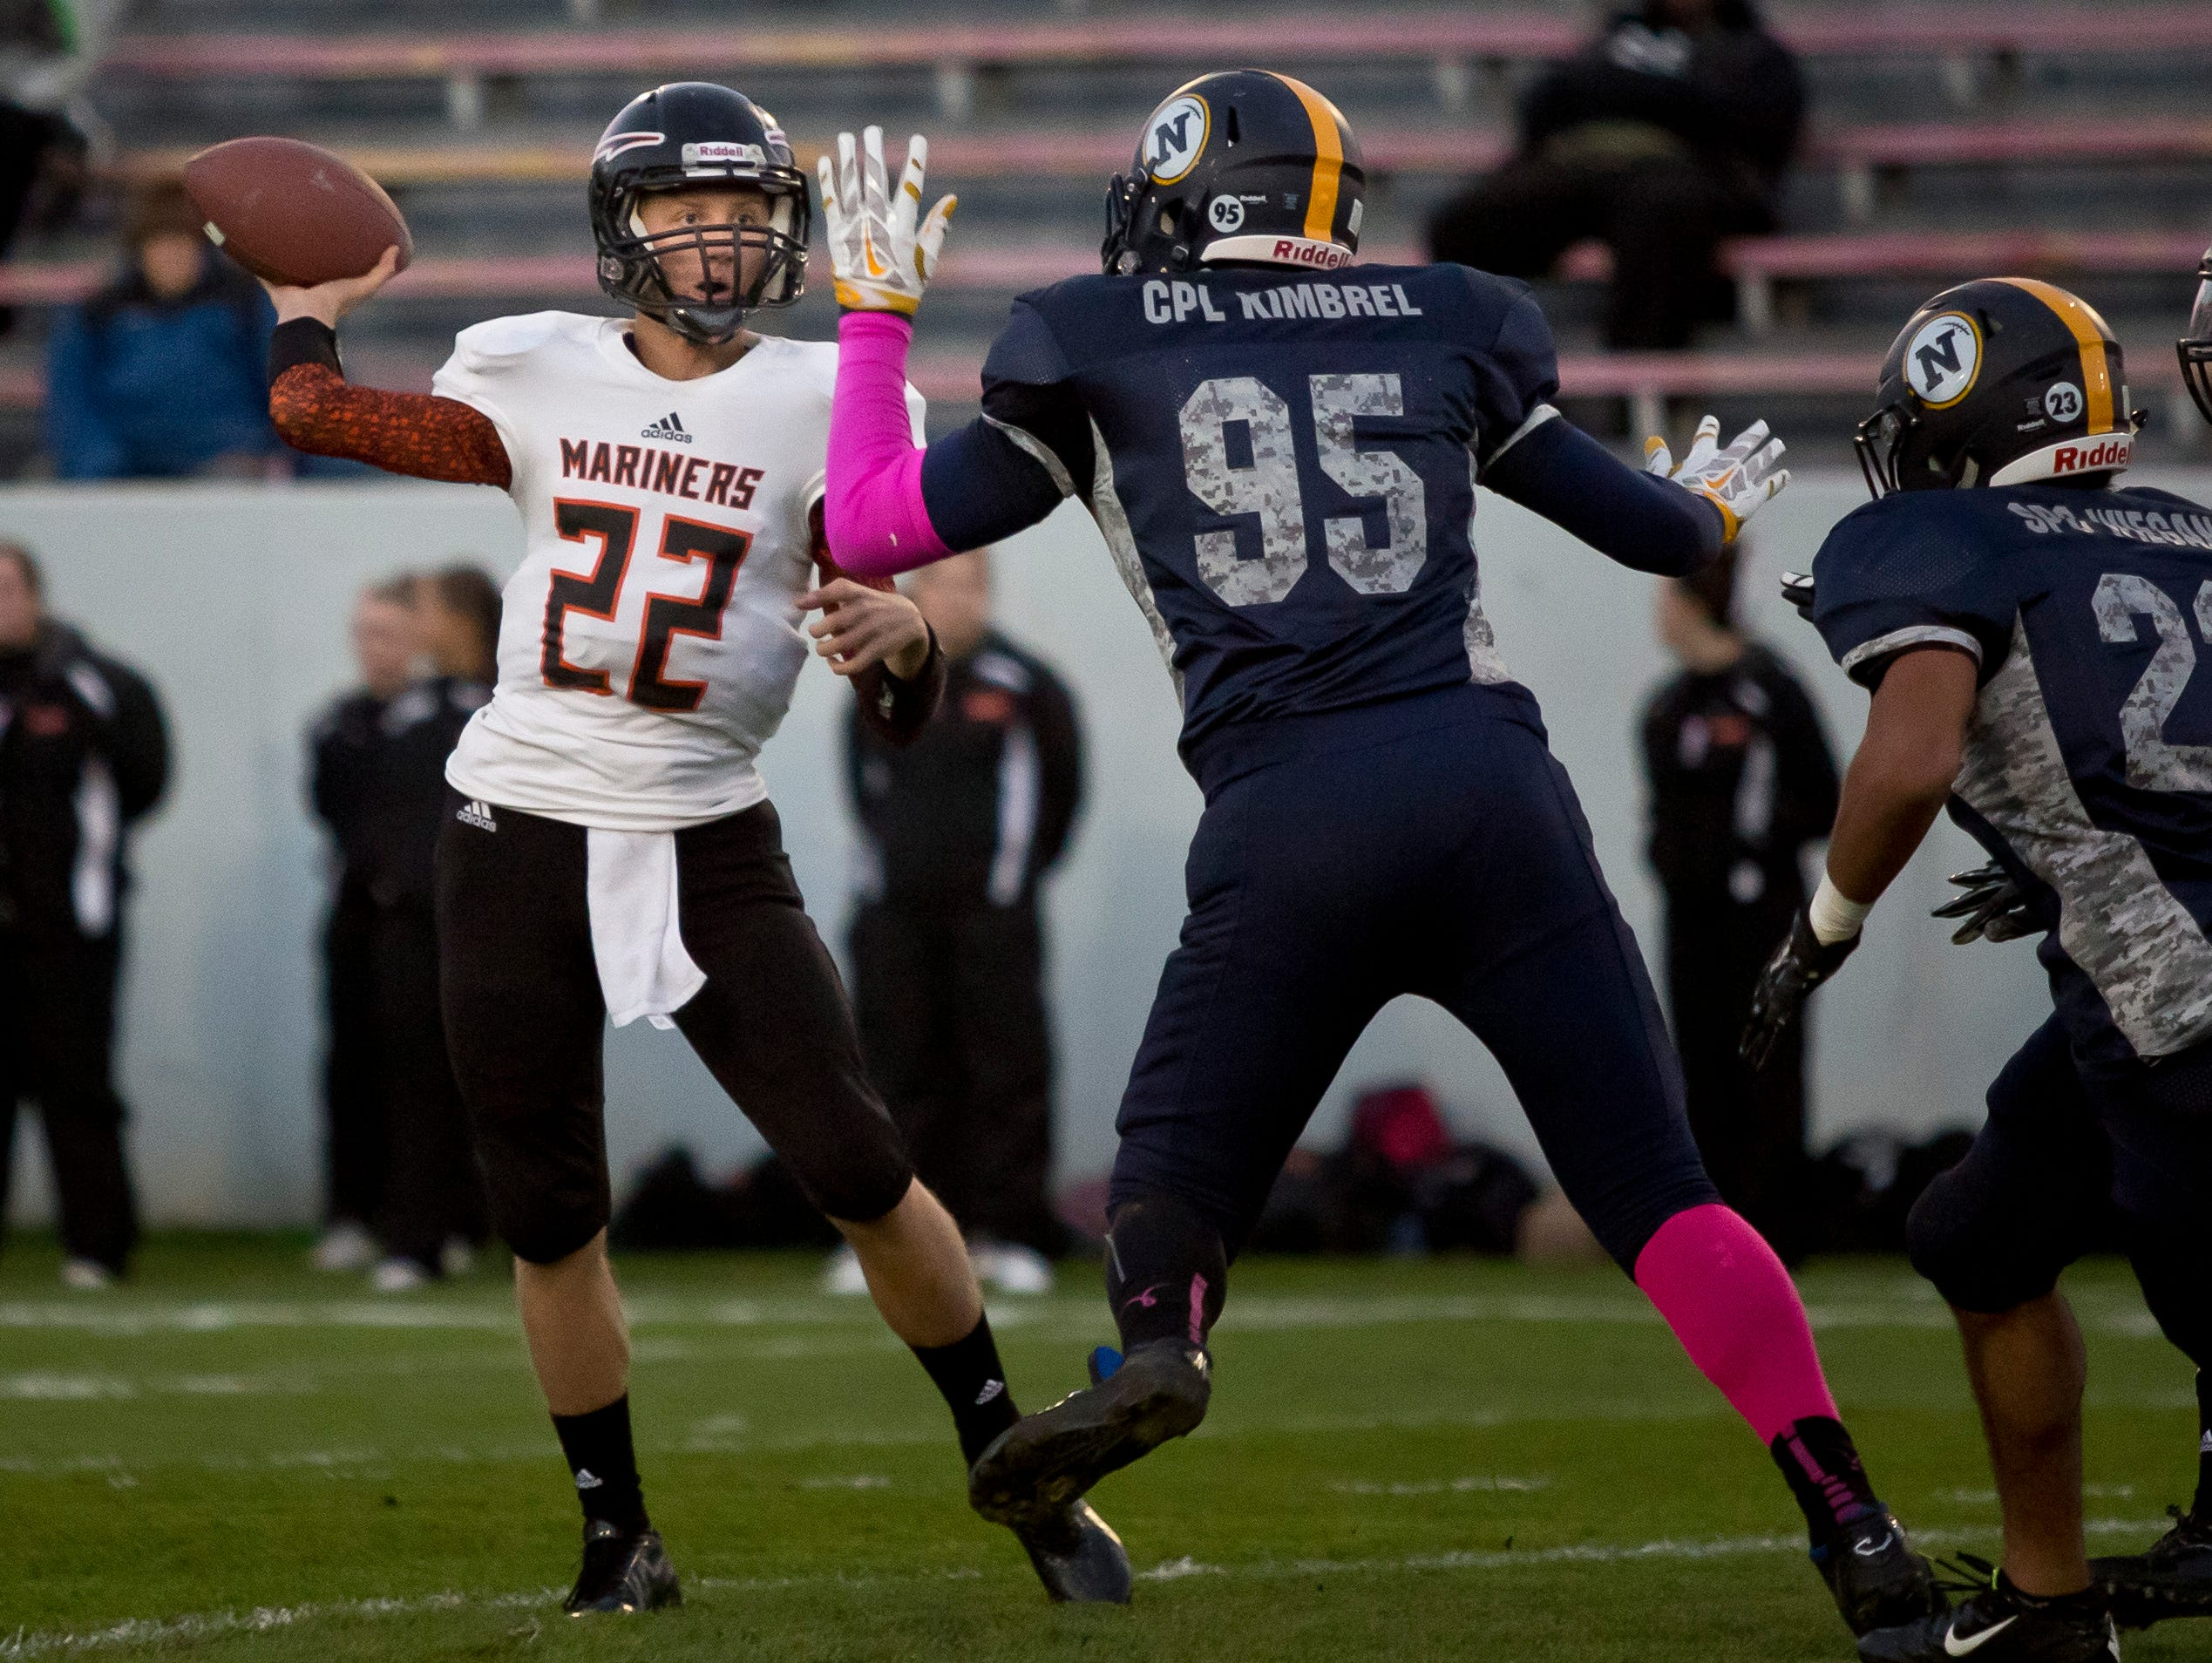 Marine City junior Kohle Sobol throws a pass during a football game Friday, October 9, 2015 at Memorial Stadium in Port Huron.